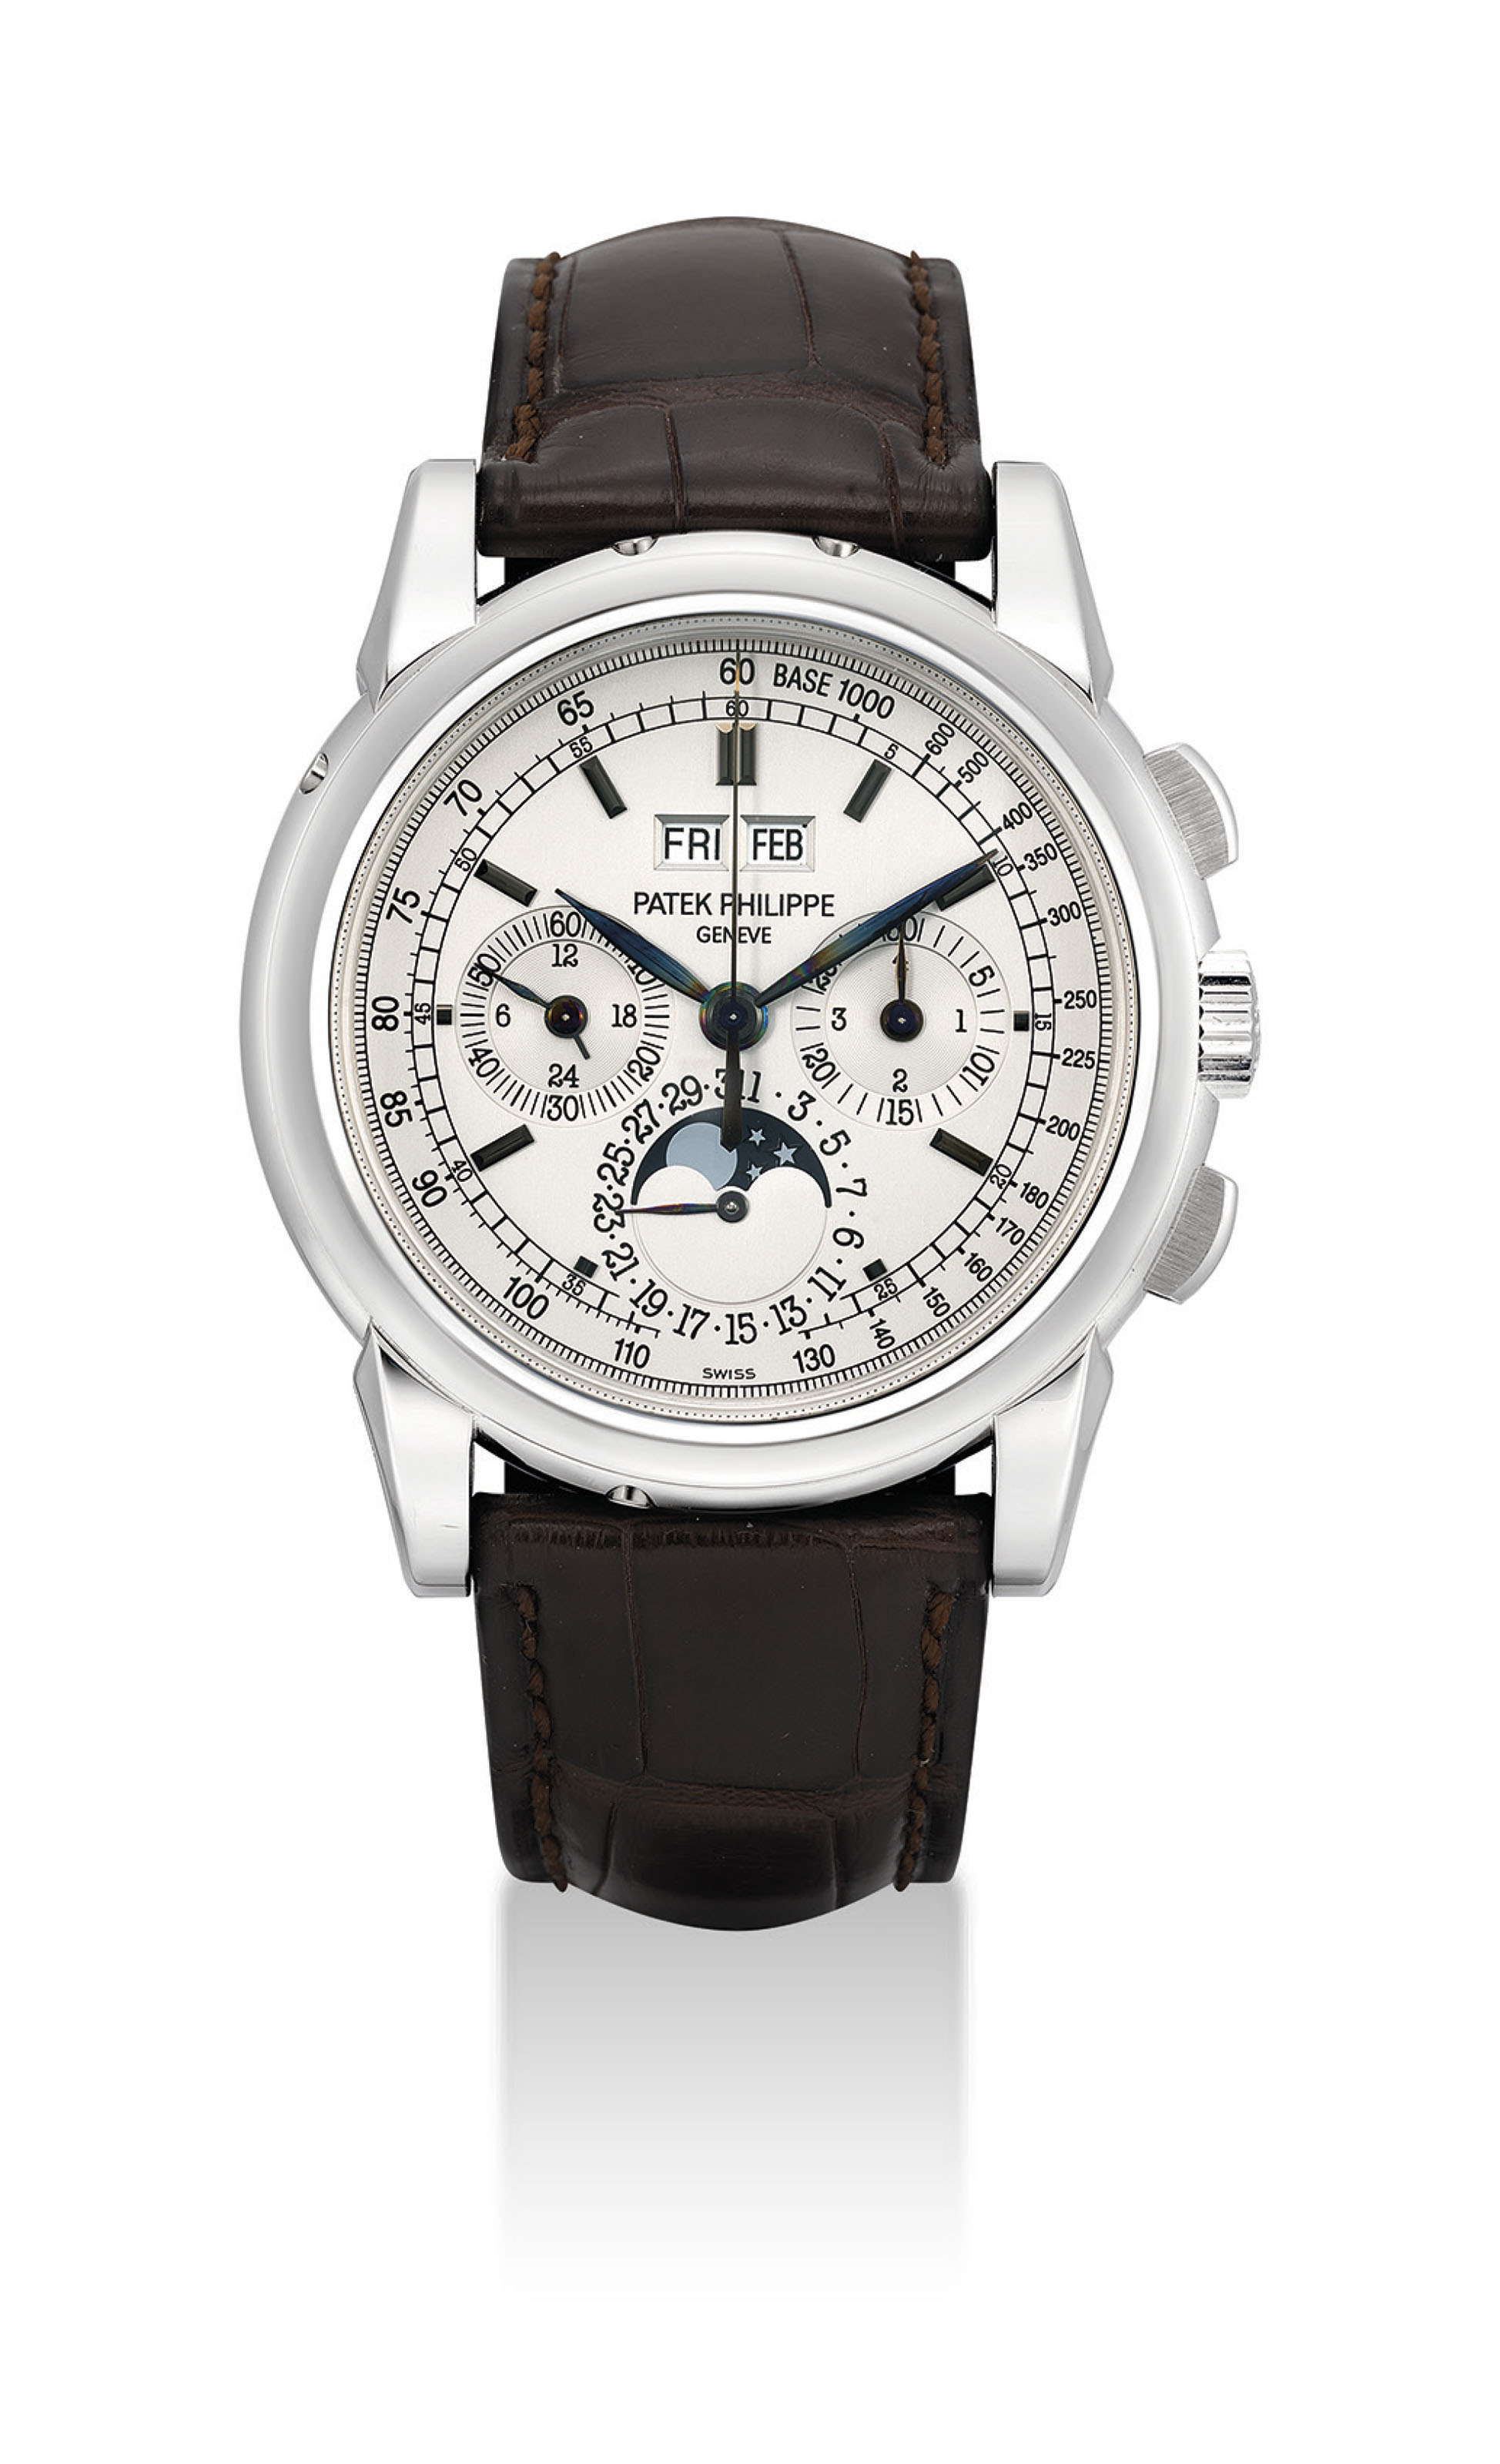 Patek philippe a fine and rare 18k white gold perpetual calendar chronograph wristwatch with for Patek philippe geneve